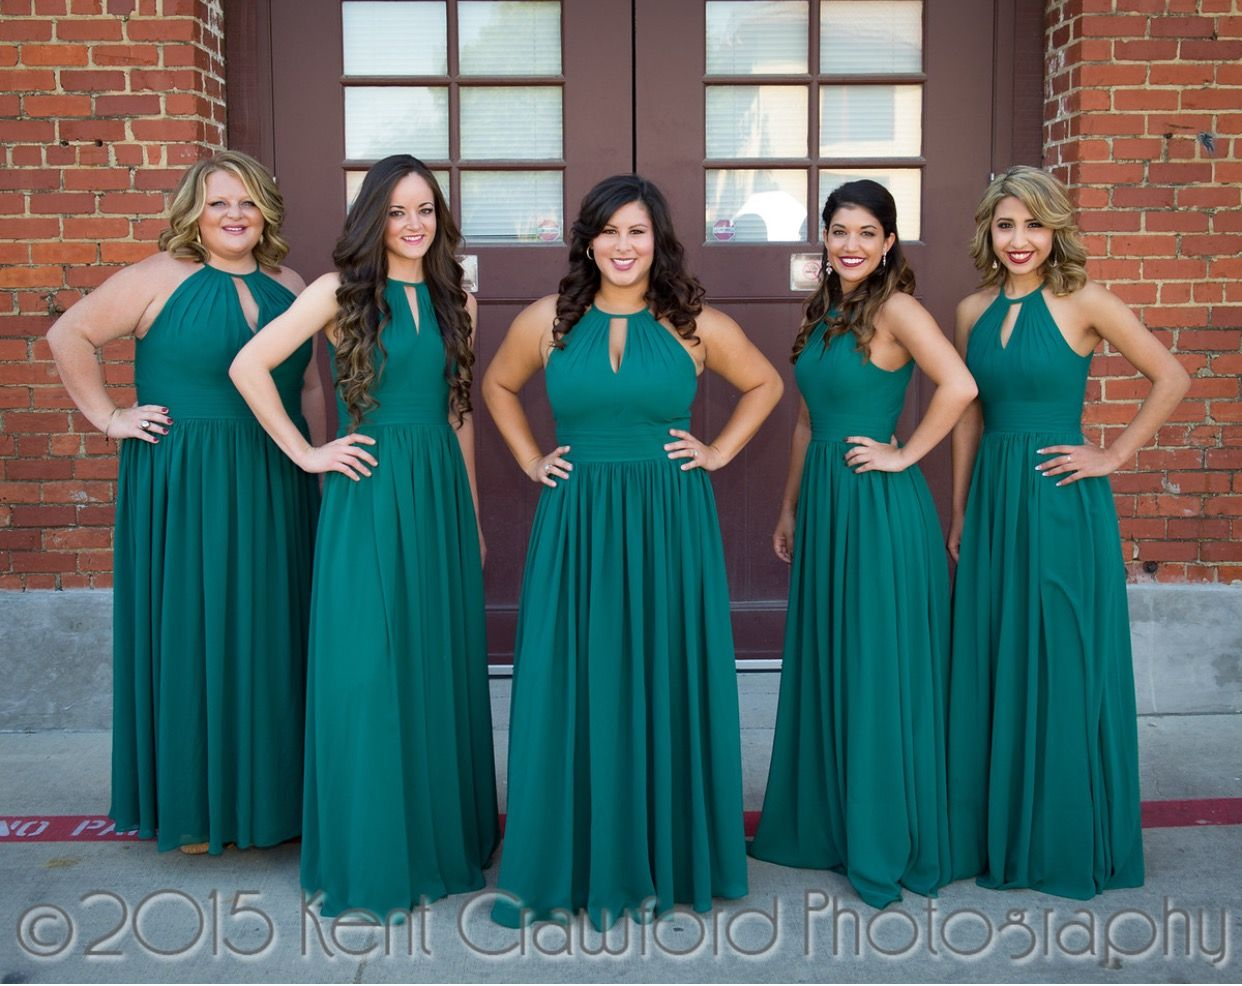 CHERISH - Bridesmaid Dress | Bodies, Wedding and Weddings